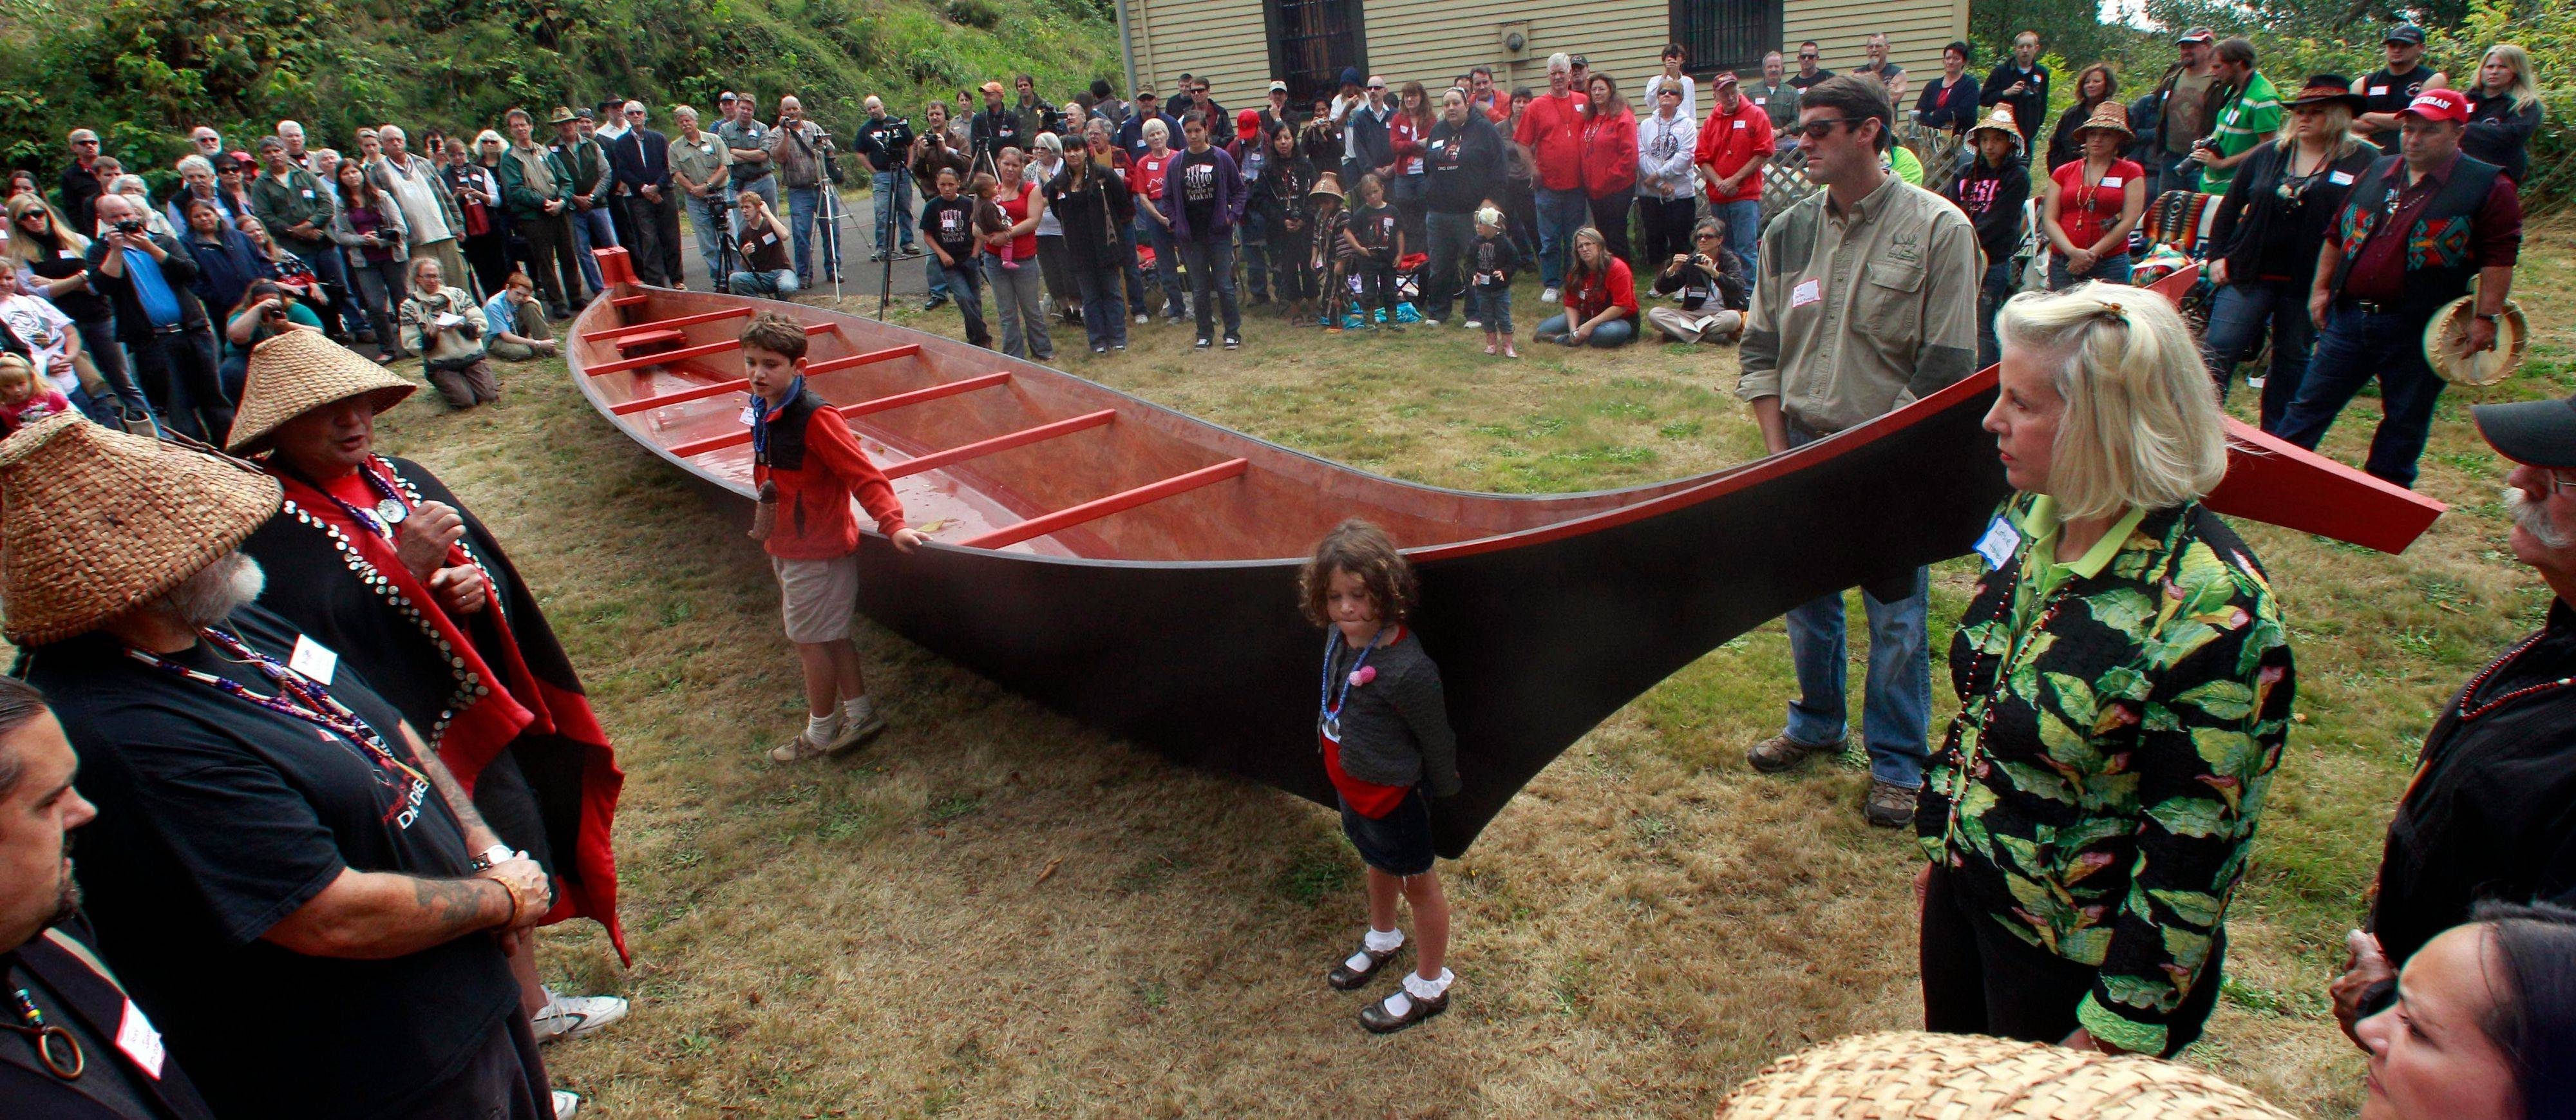 William Clark's descendants Robert Holton, 8, and his sister, Greta, 4, and their father Rob Holton and their grandmother Carlota 'Lotsie' Holton, stand in front of their gift, a 36-foot canoe as Chinook elders, left, look on Saturday during the canoe reparation ceremony.